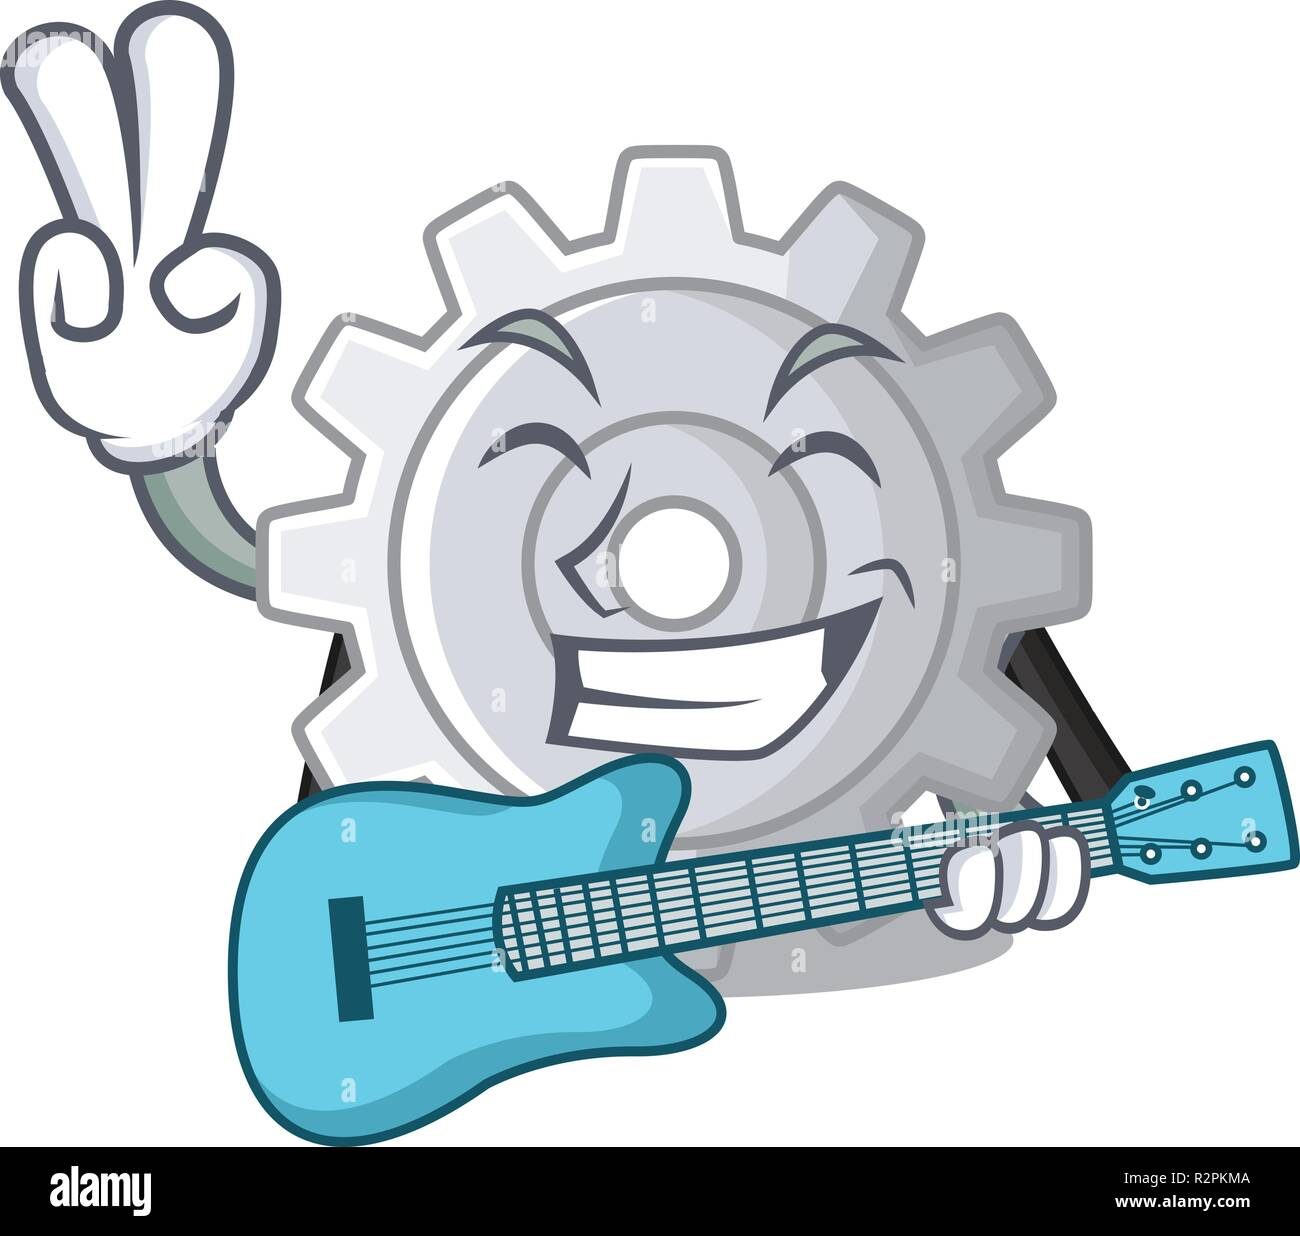 With guitar gear settings mechanism on mascot shape - Stock Image